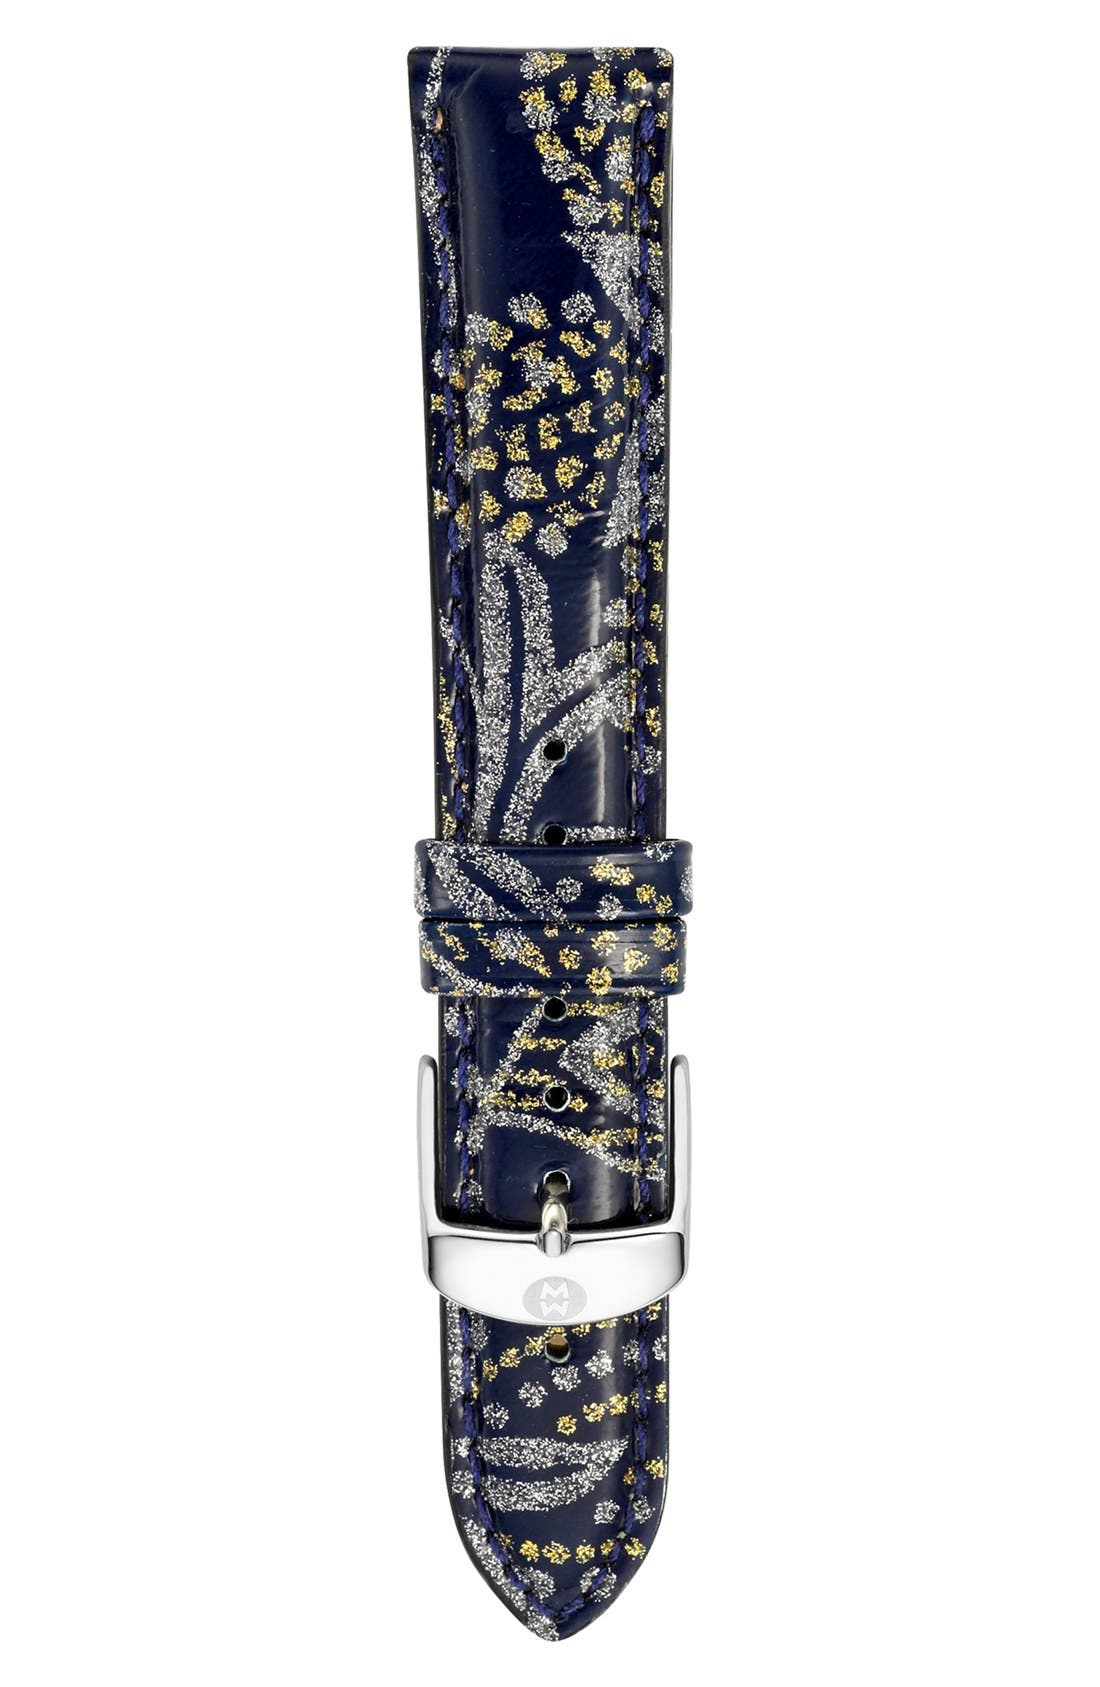 Main Image - MICHELE 18mm Paisley Pattern Patent Leather Watch Strap